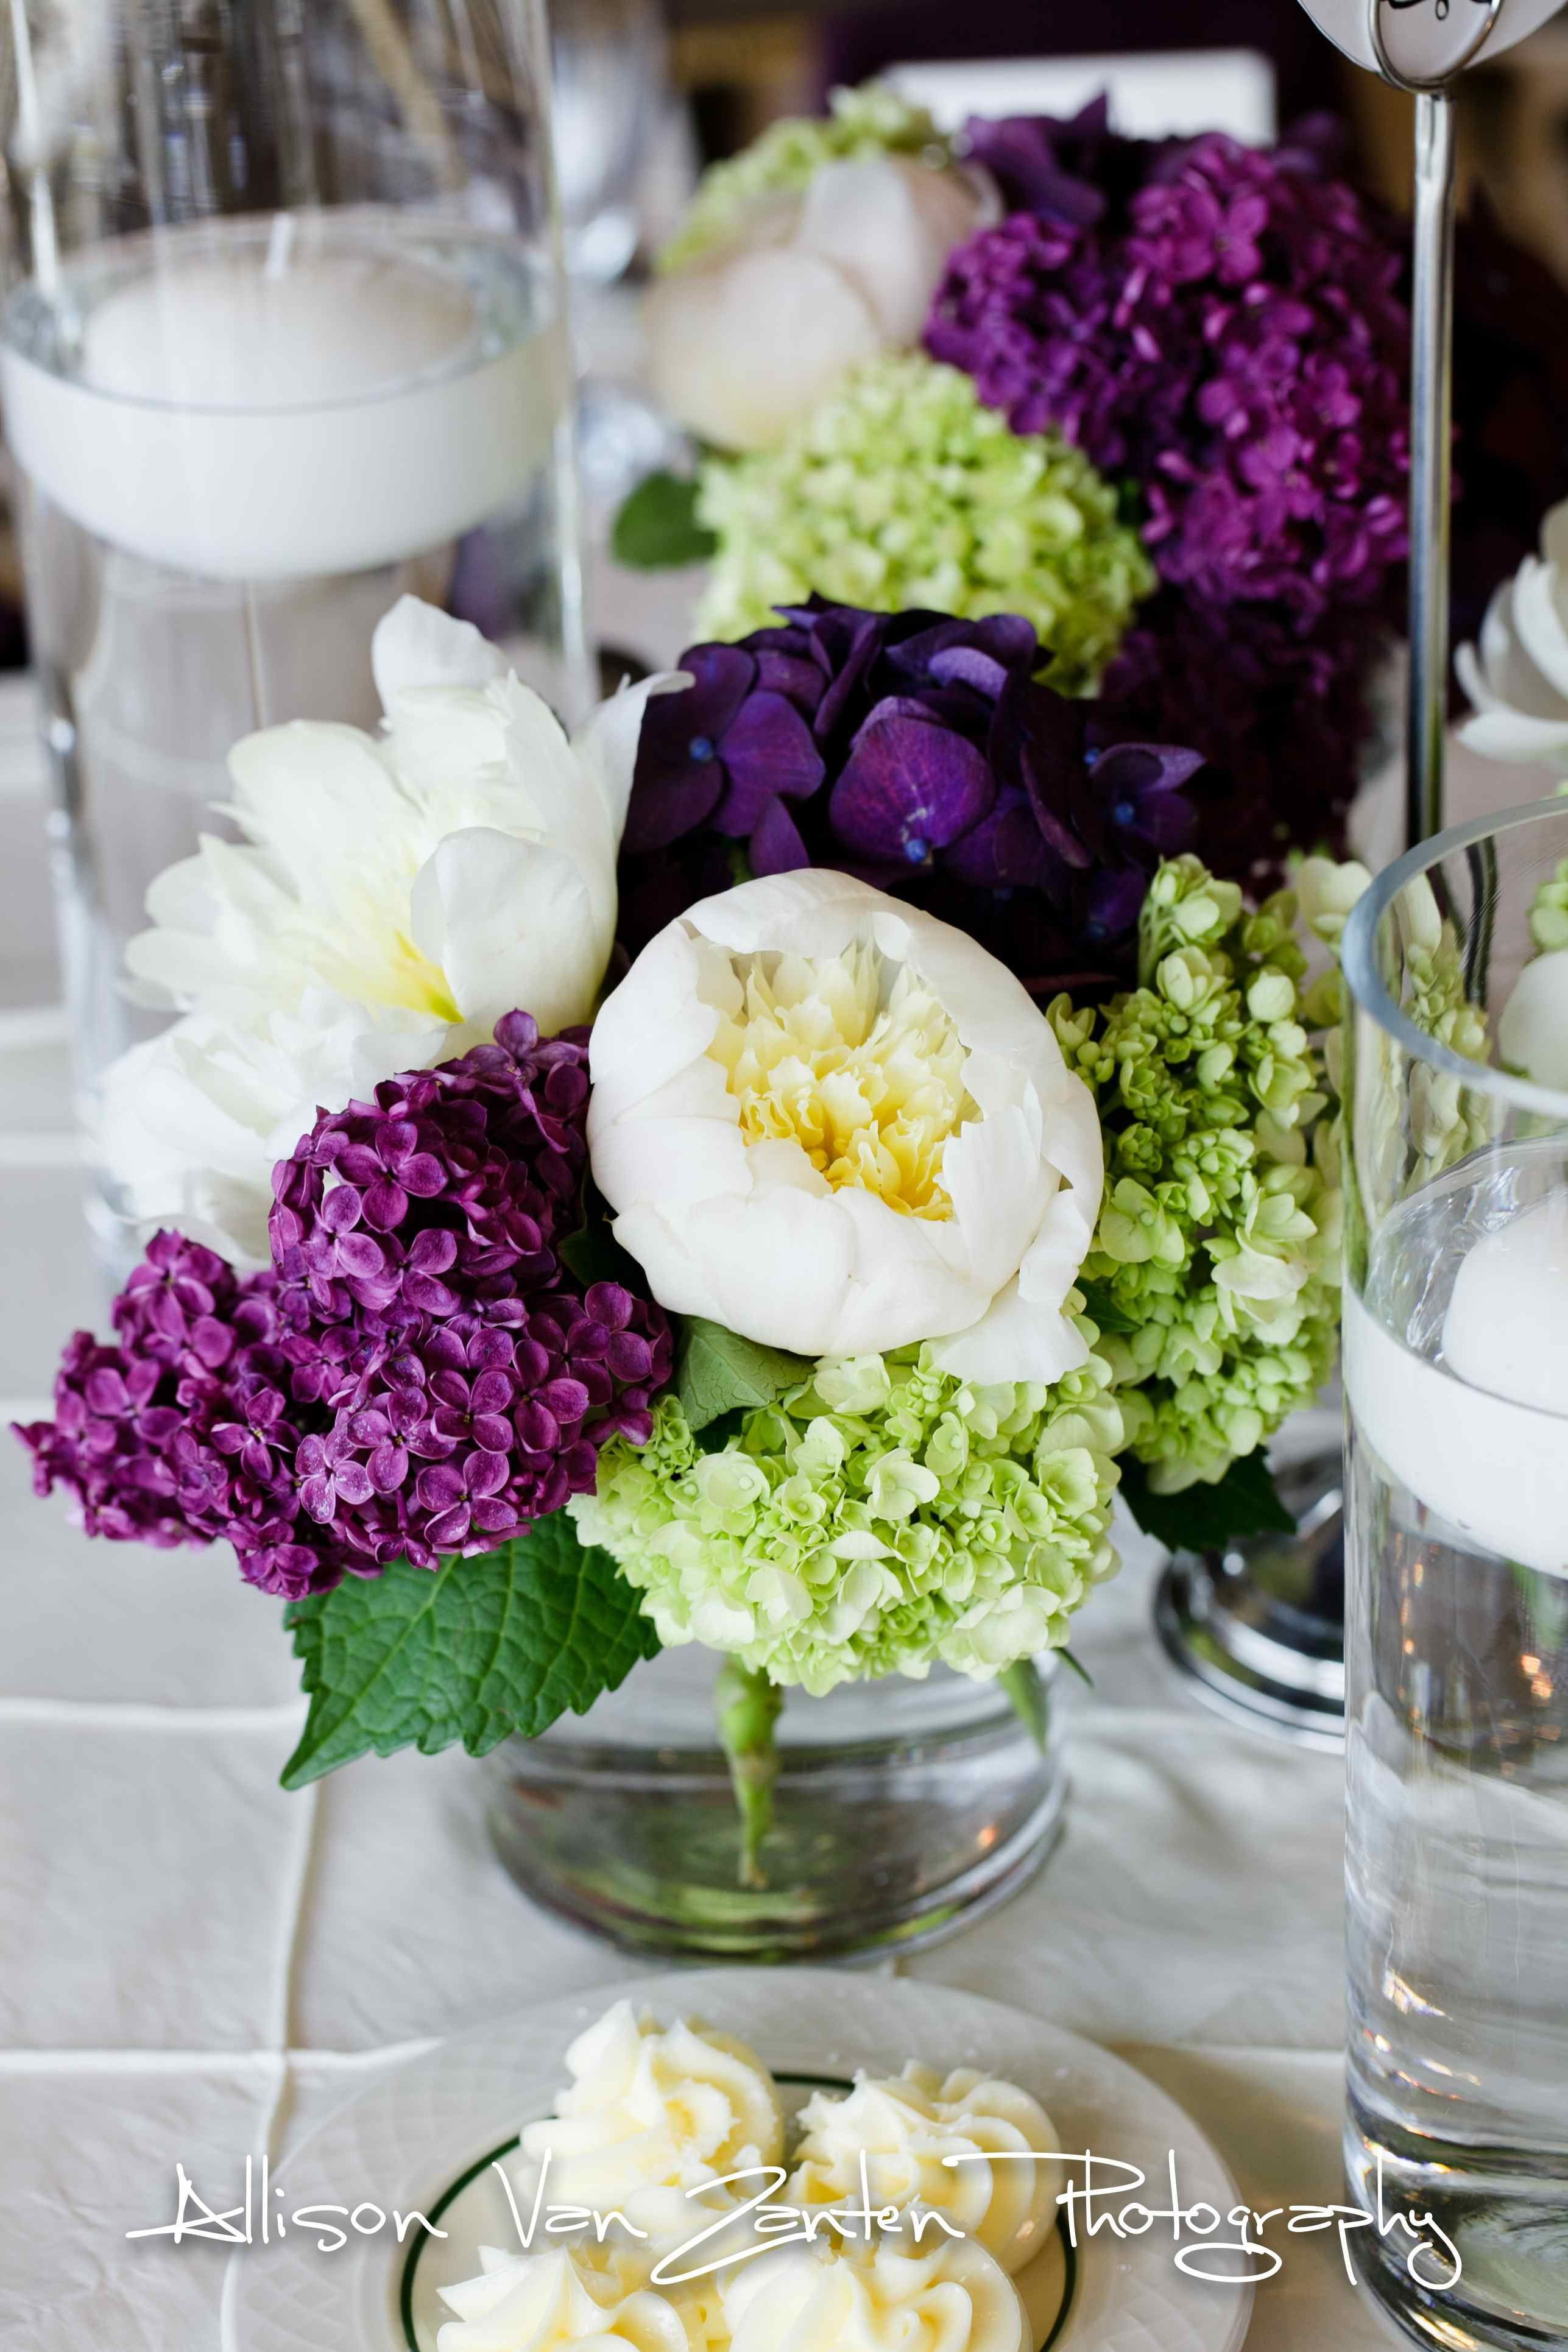 Love this peony and hydrangea arrangement